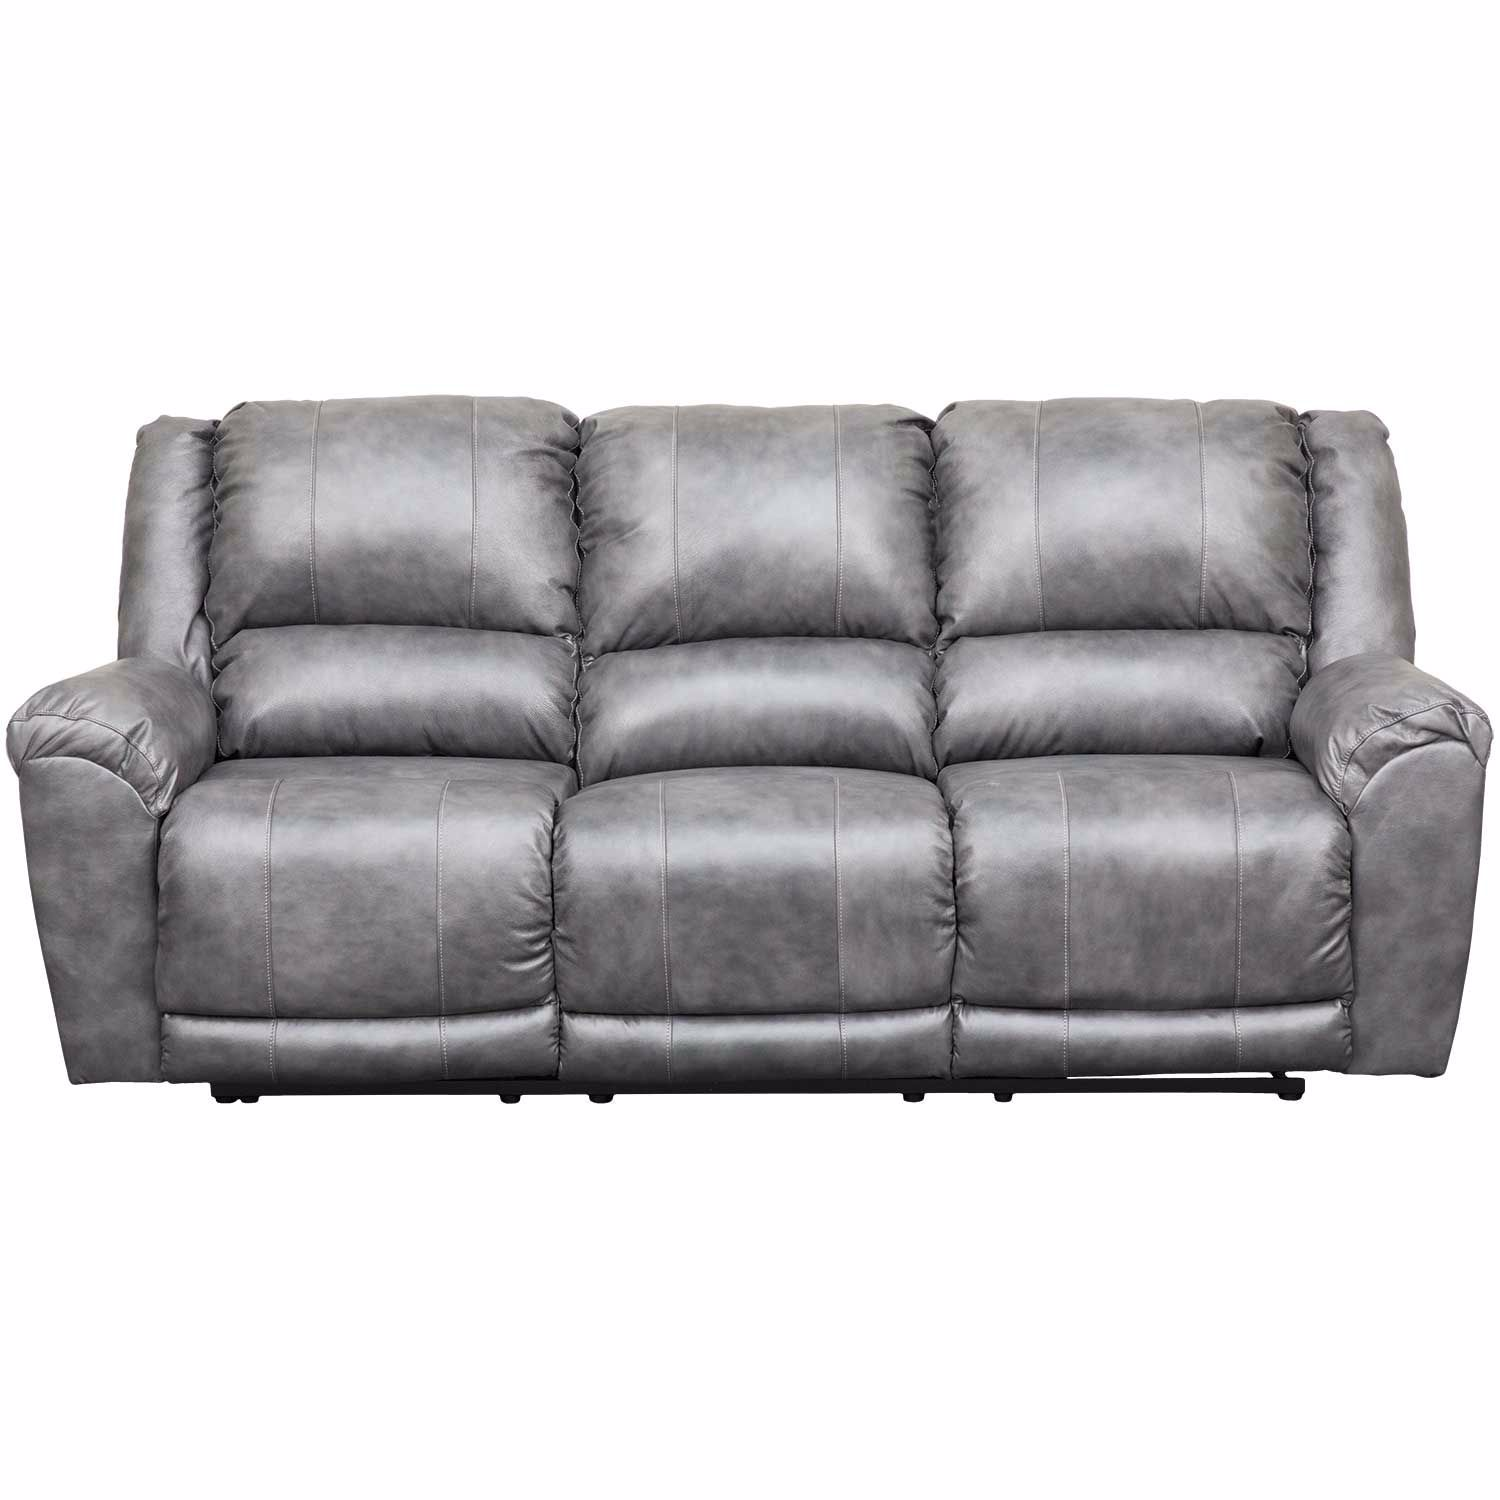 Persiphone Charcoal Leather Power Reclining Sofa